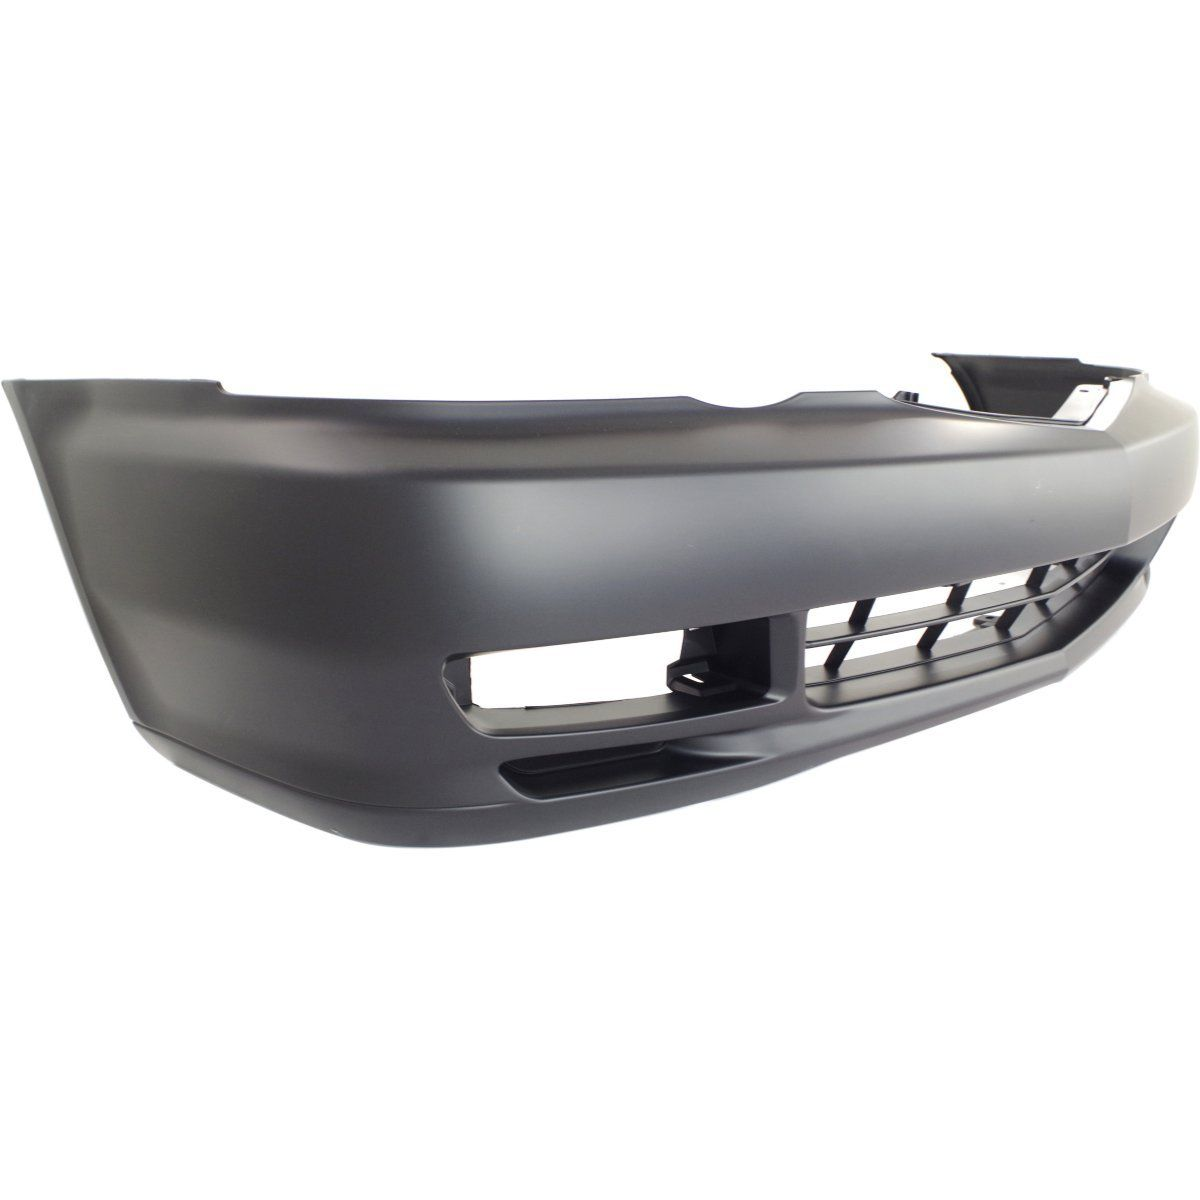 Front Bumper Cover For 2002-2003 Acura TL W/ Fog Lamp